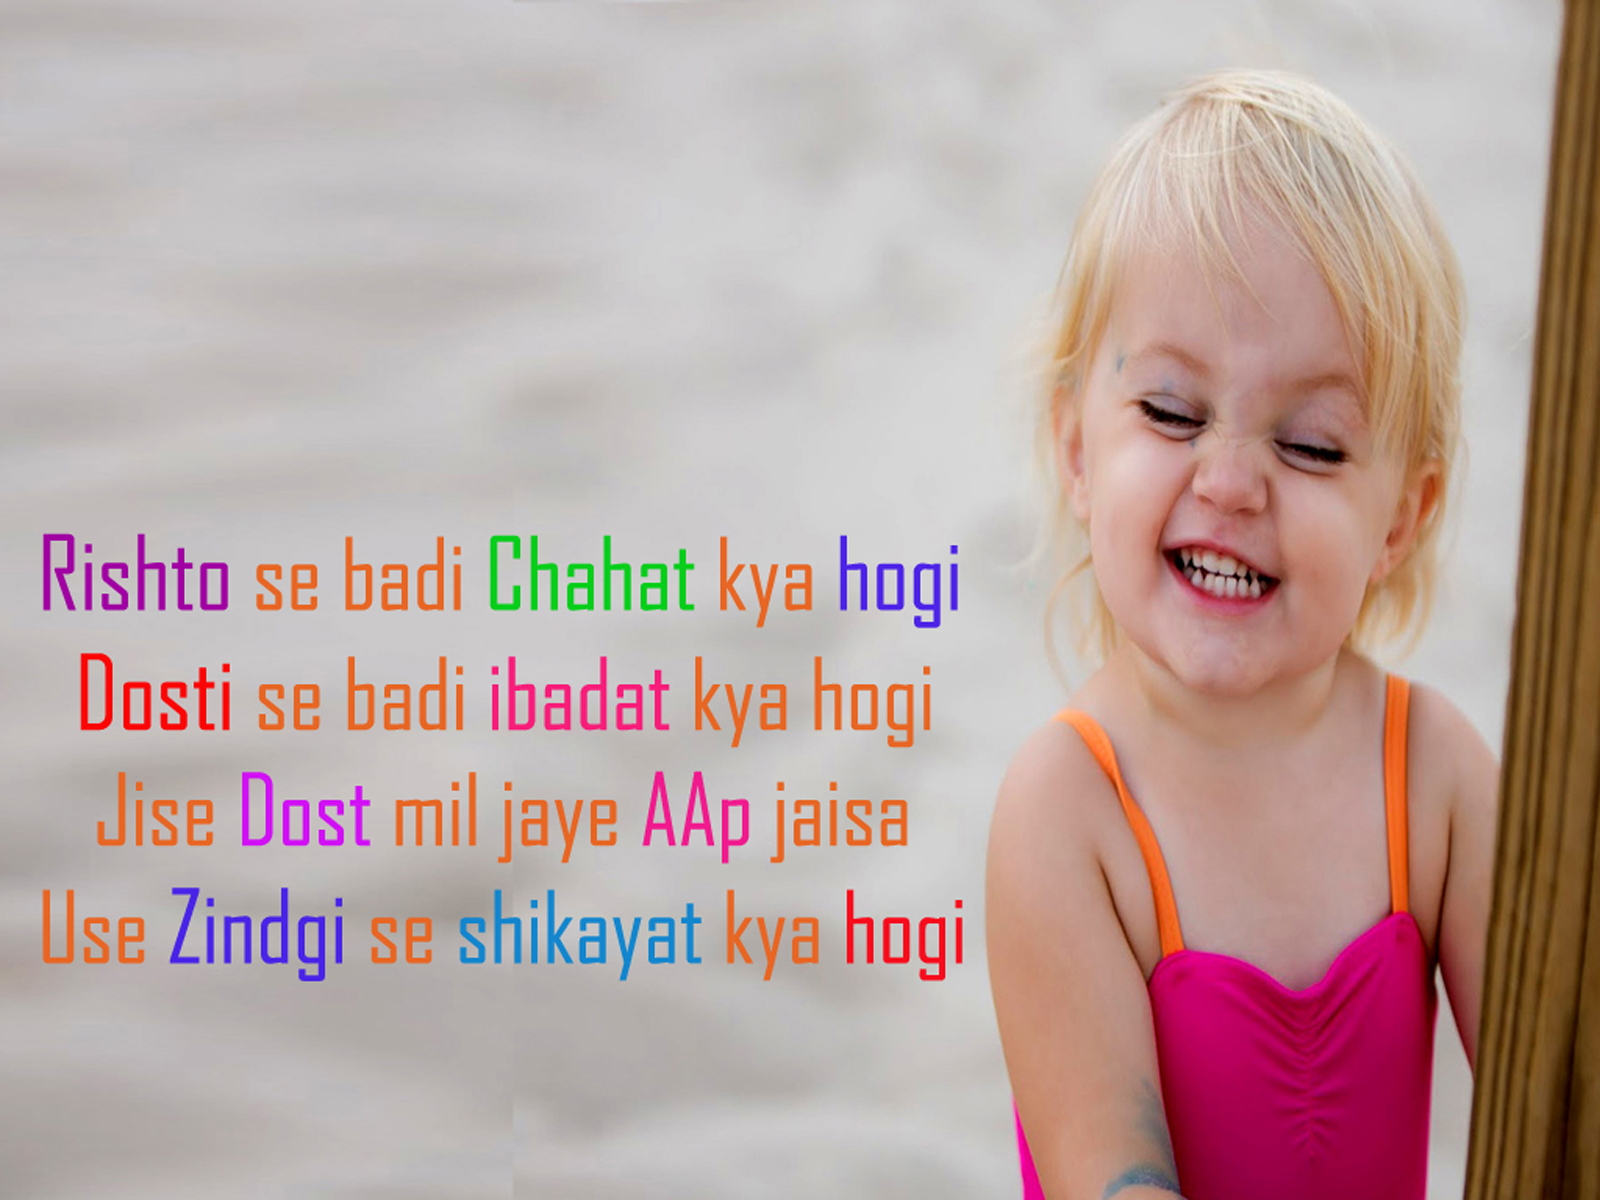 Funny Quotes About Friendship And Memories In Urdu : Beautiful Quotes On Friendship In Urdu Shayari urdu images, urdu ...